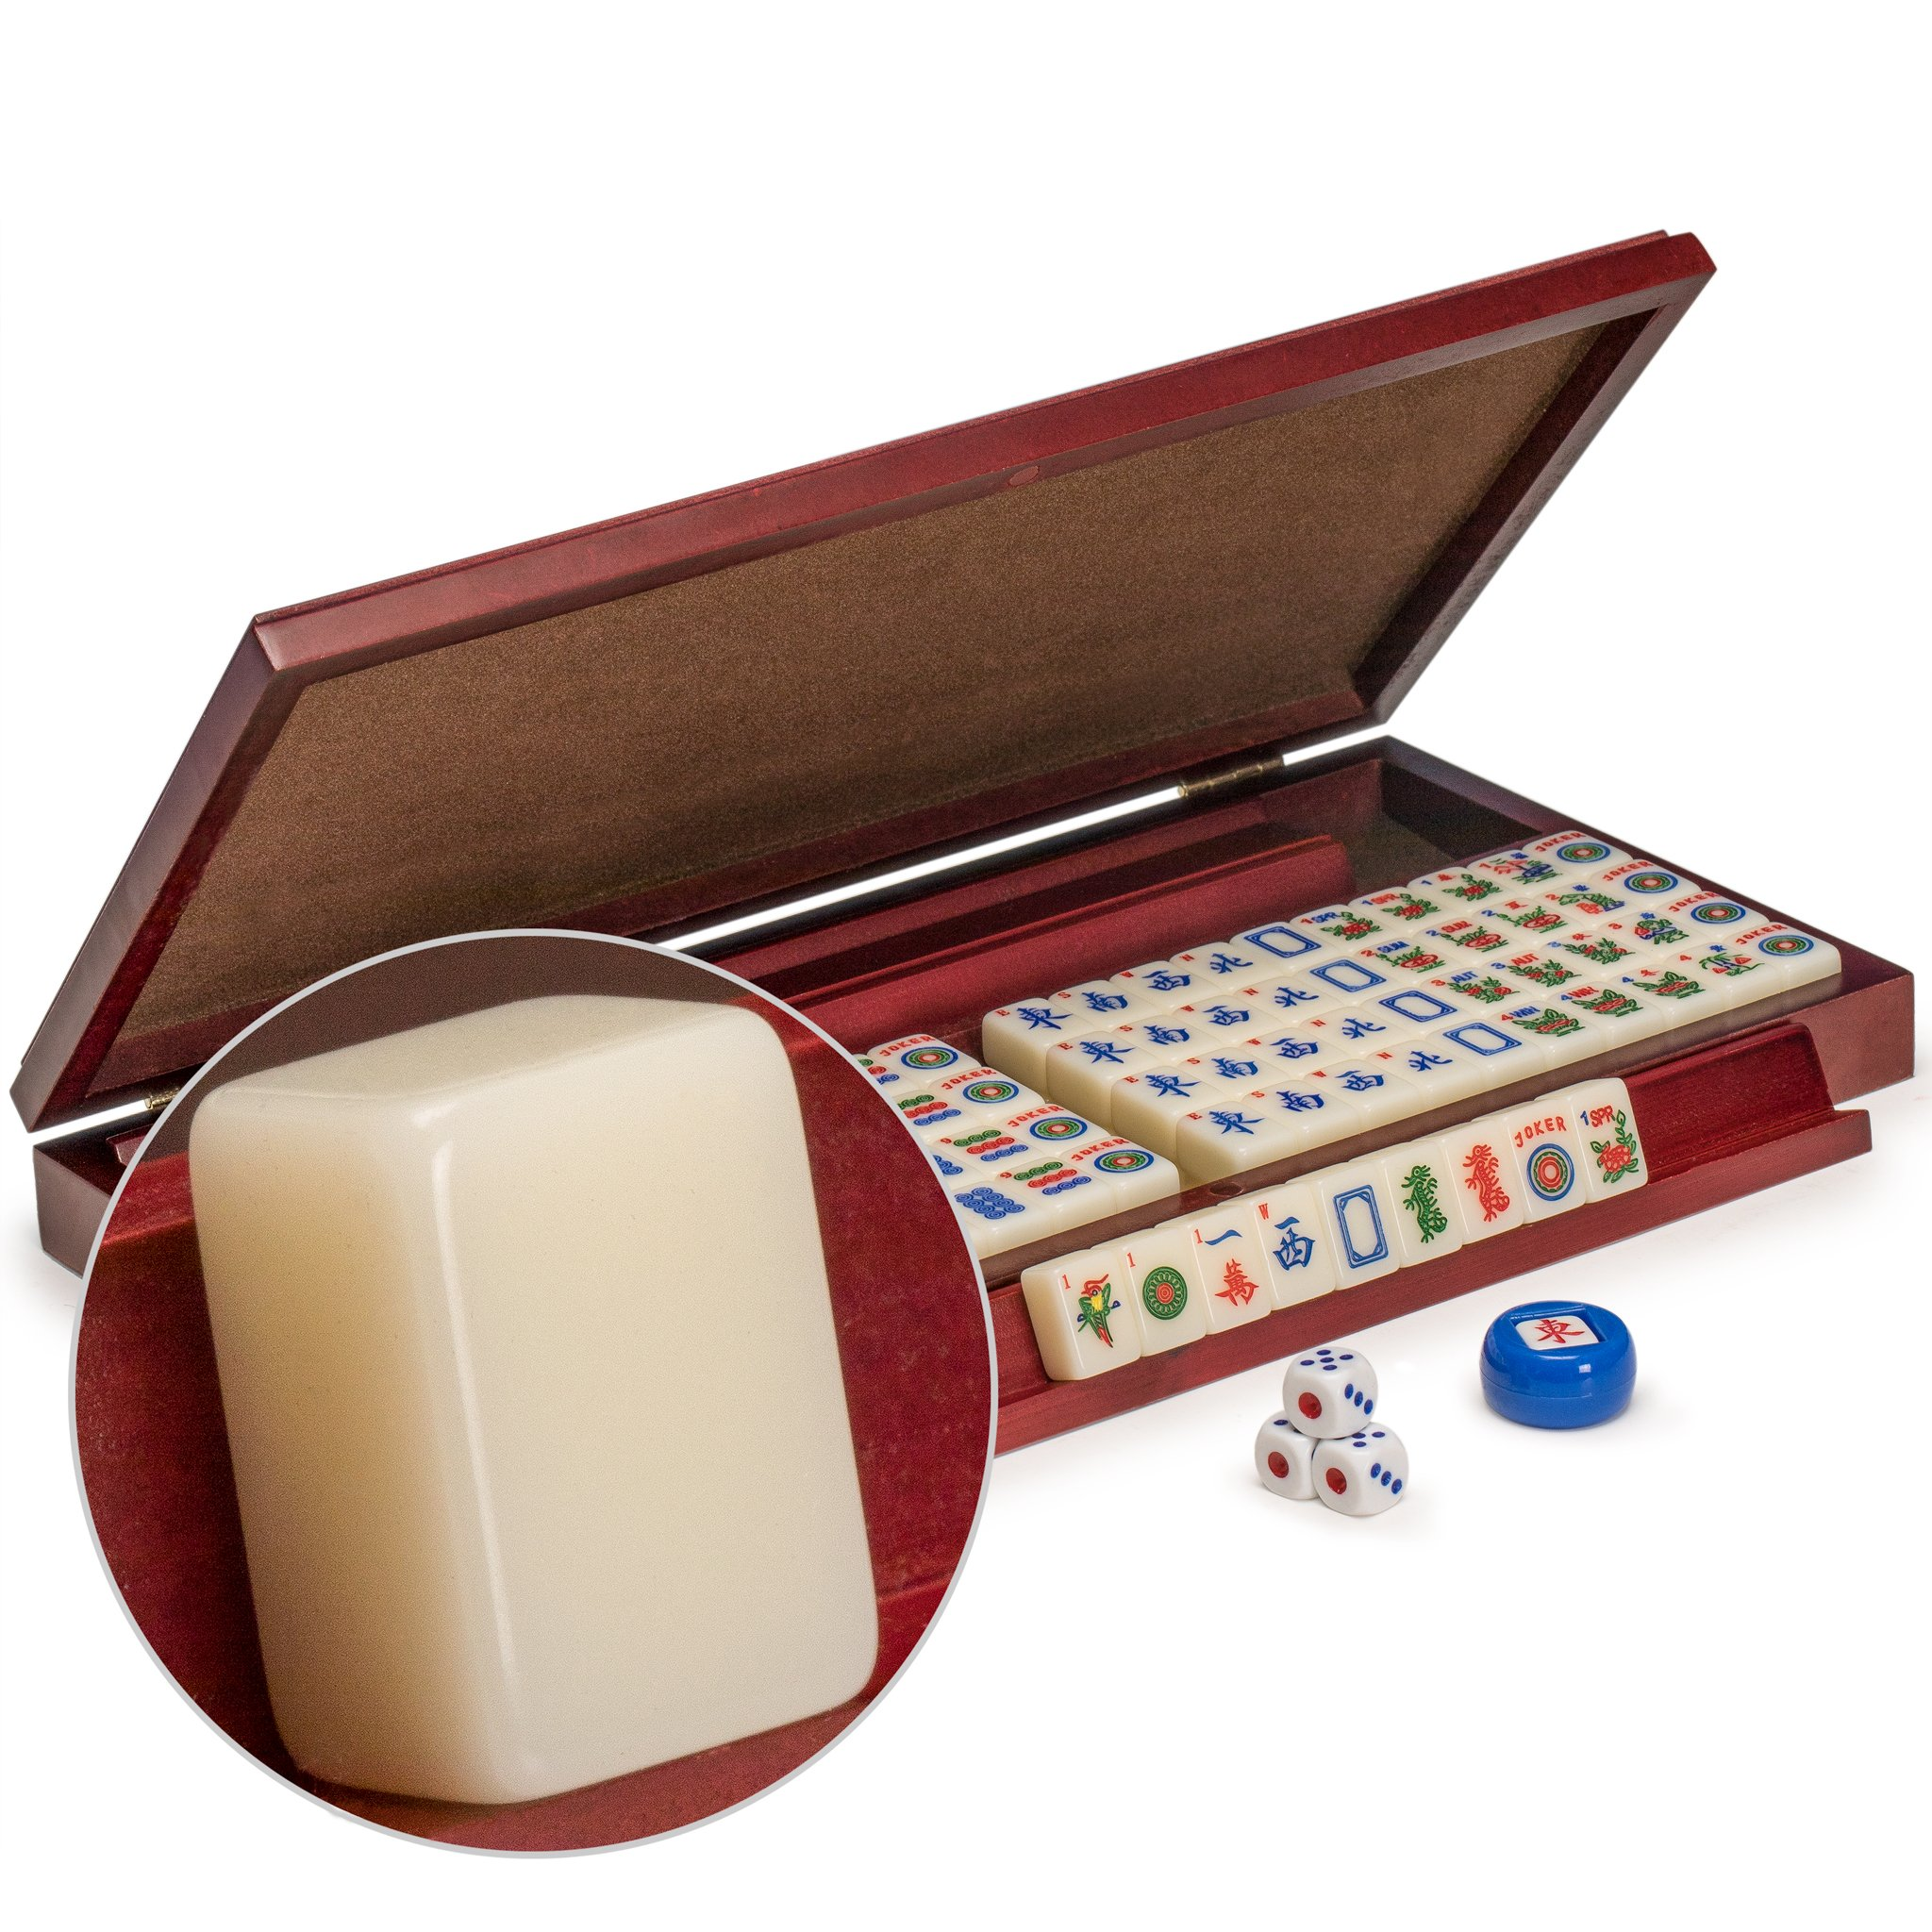 Yellow Mountain Imports Miniature American Mahjong (Mah Jong, Mahjongg, Mah-Jongg, Mah Jongg) Set with 166 Mini-Tiles, Case, and Accessories, Travel Set